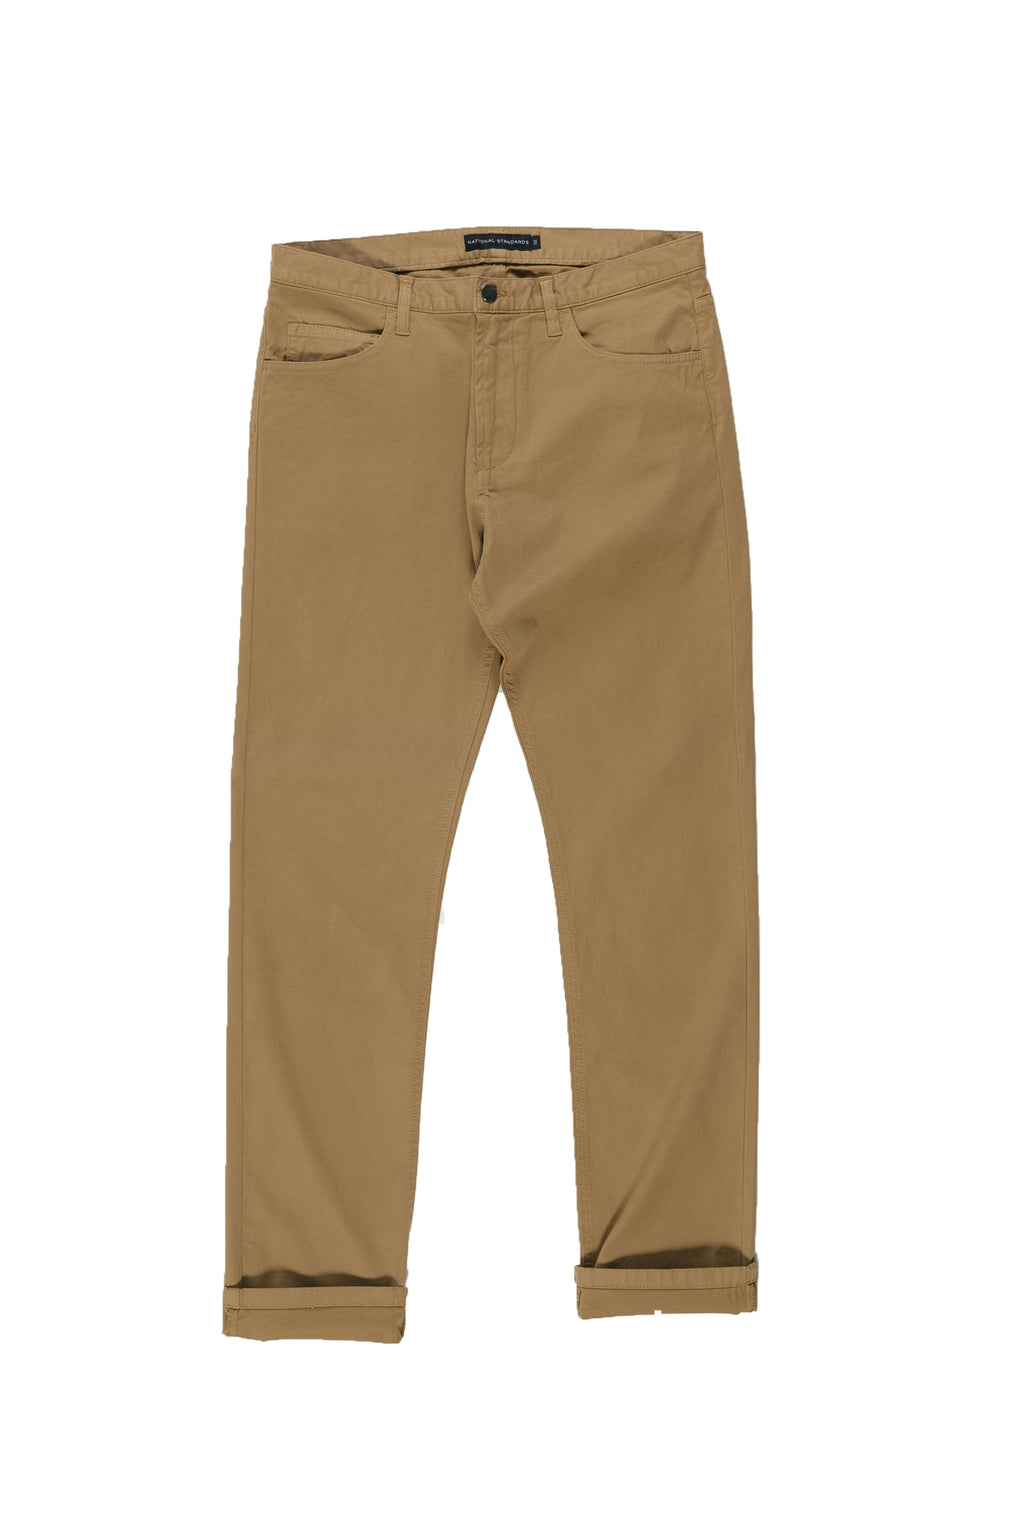 Stretch 5 pocket in Camel